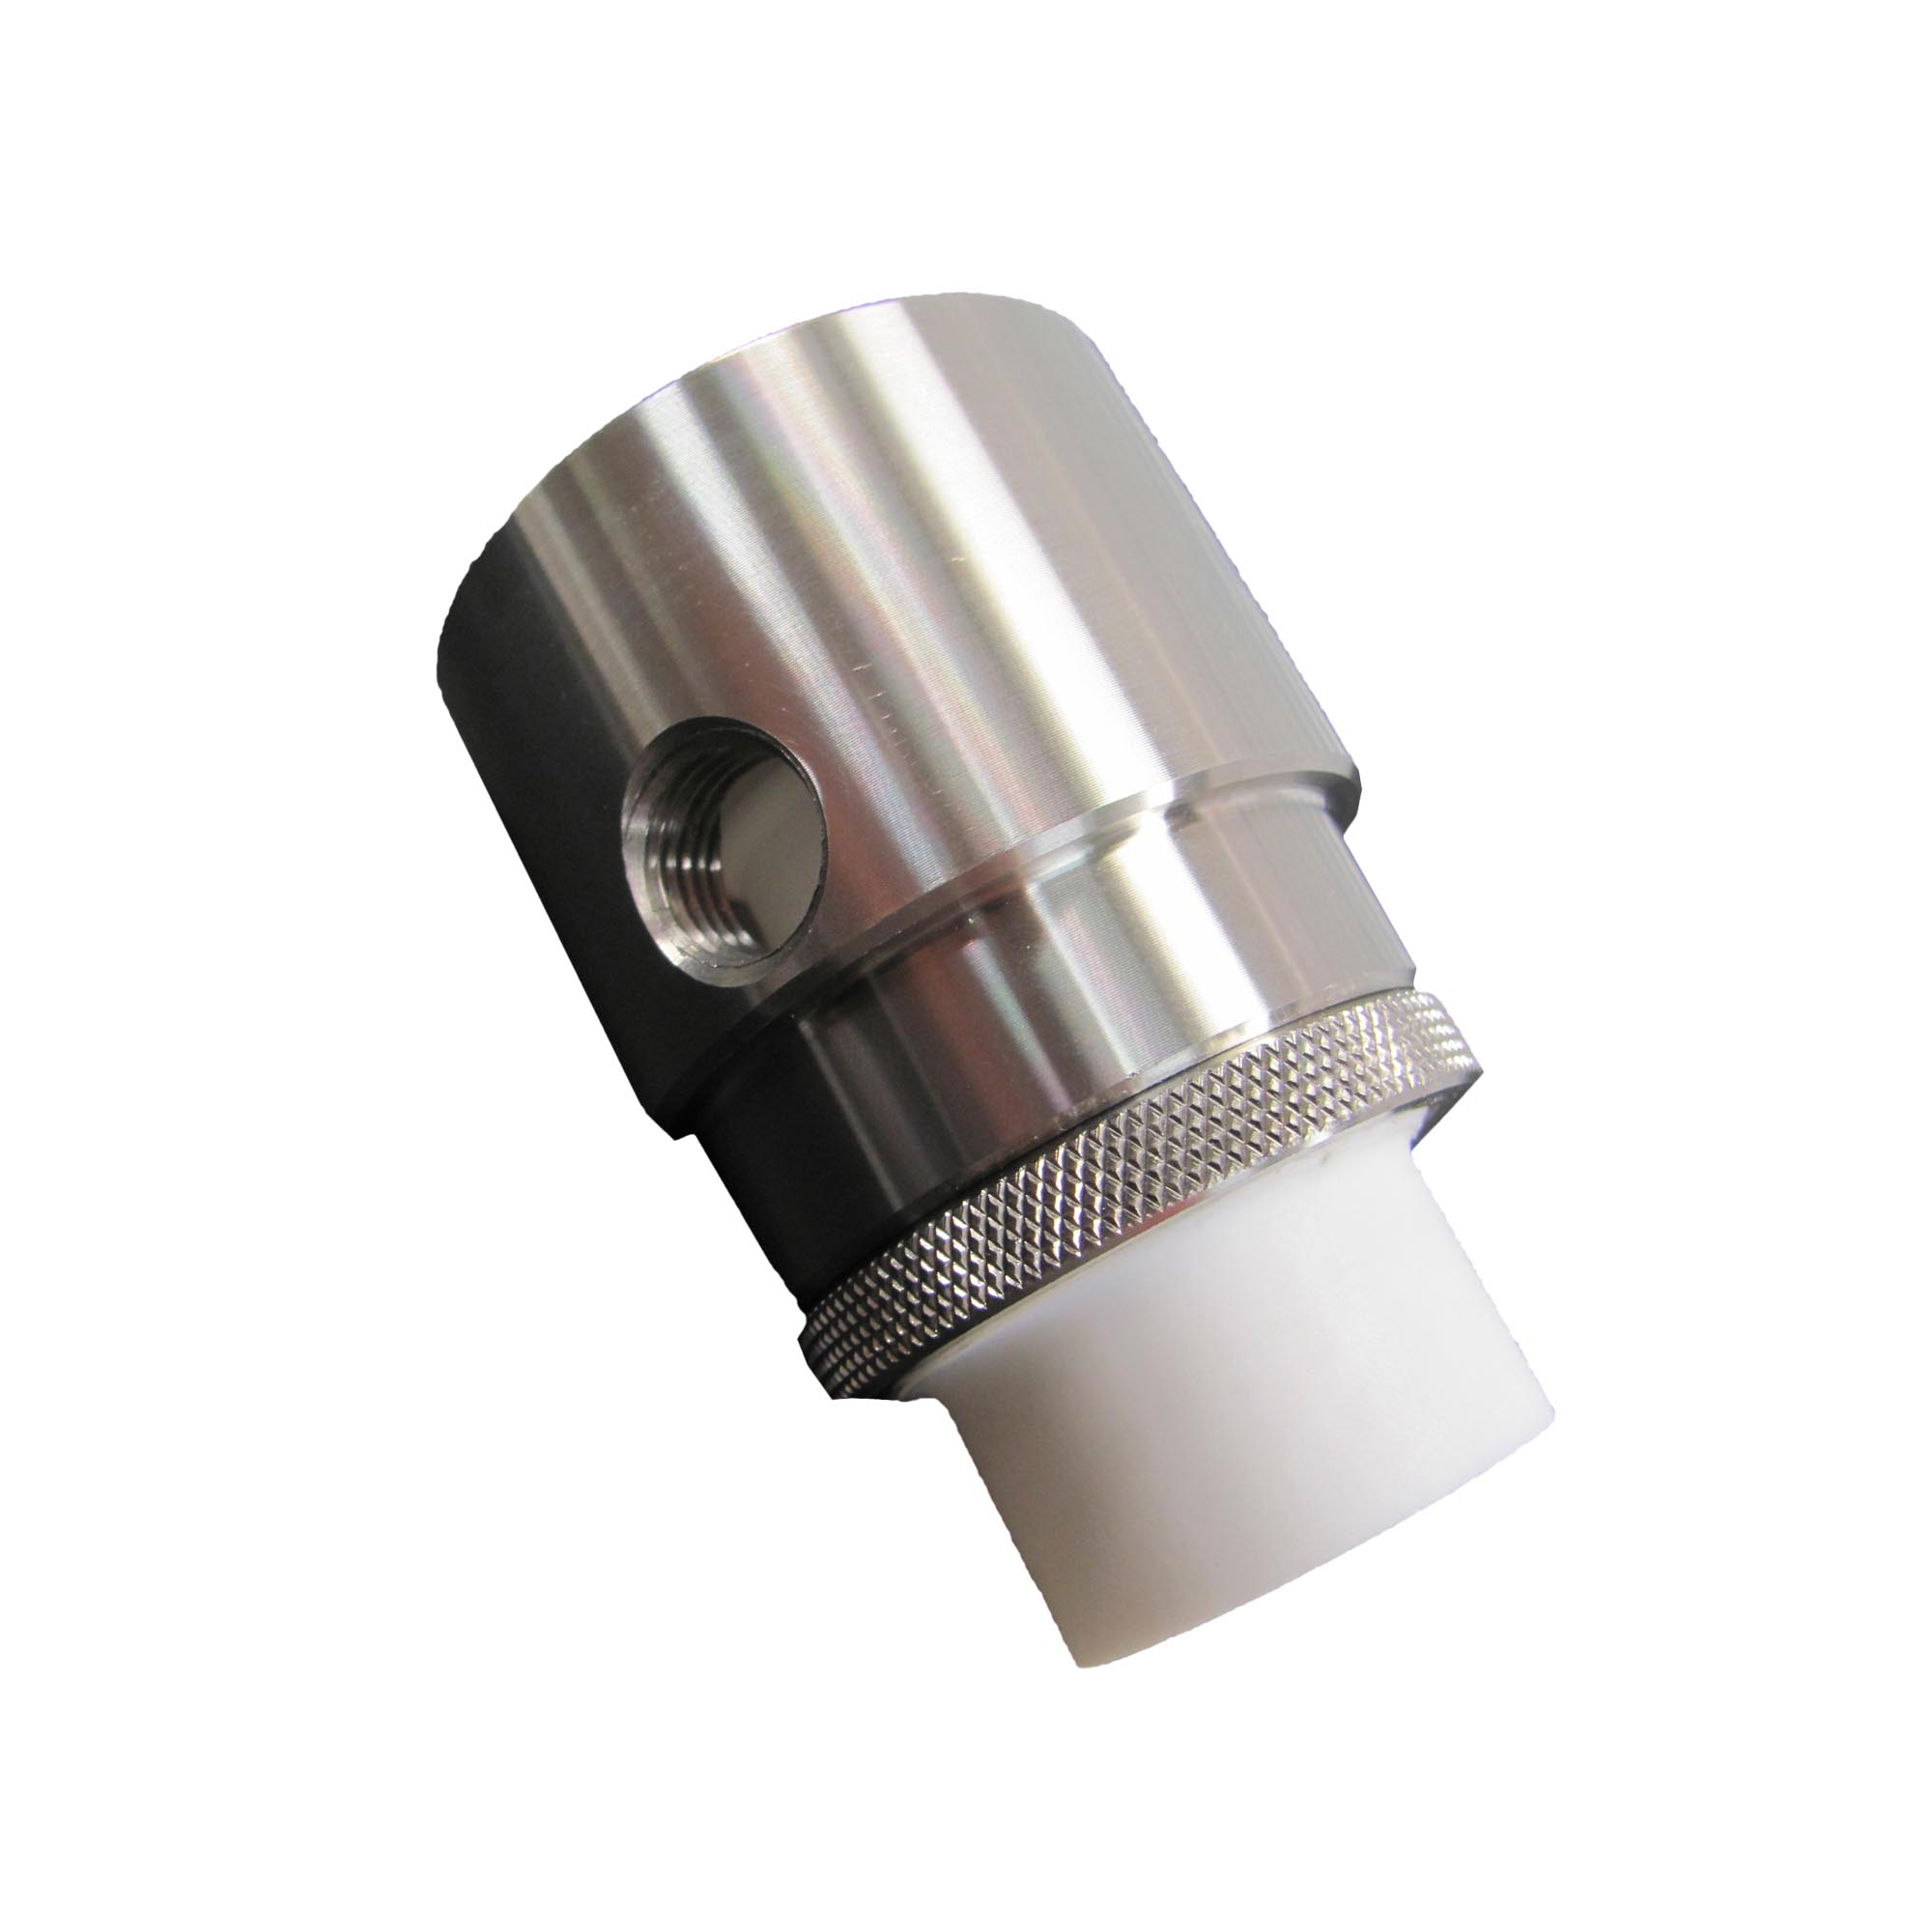 The airflow from this stainless steel Adjustable Air Amplifier with PTFE plug helped pull a sticky material through a process and prevented the material from depositing on the Air Amplifier.